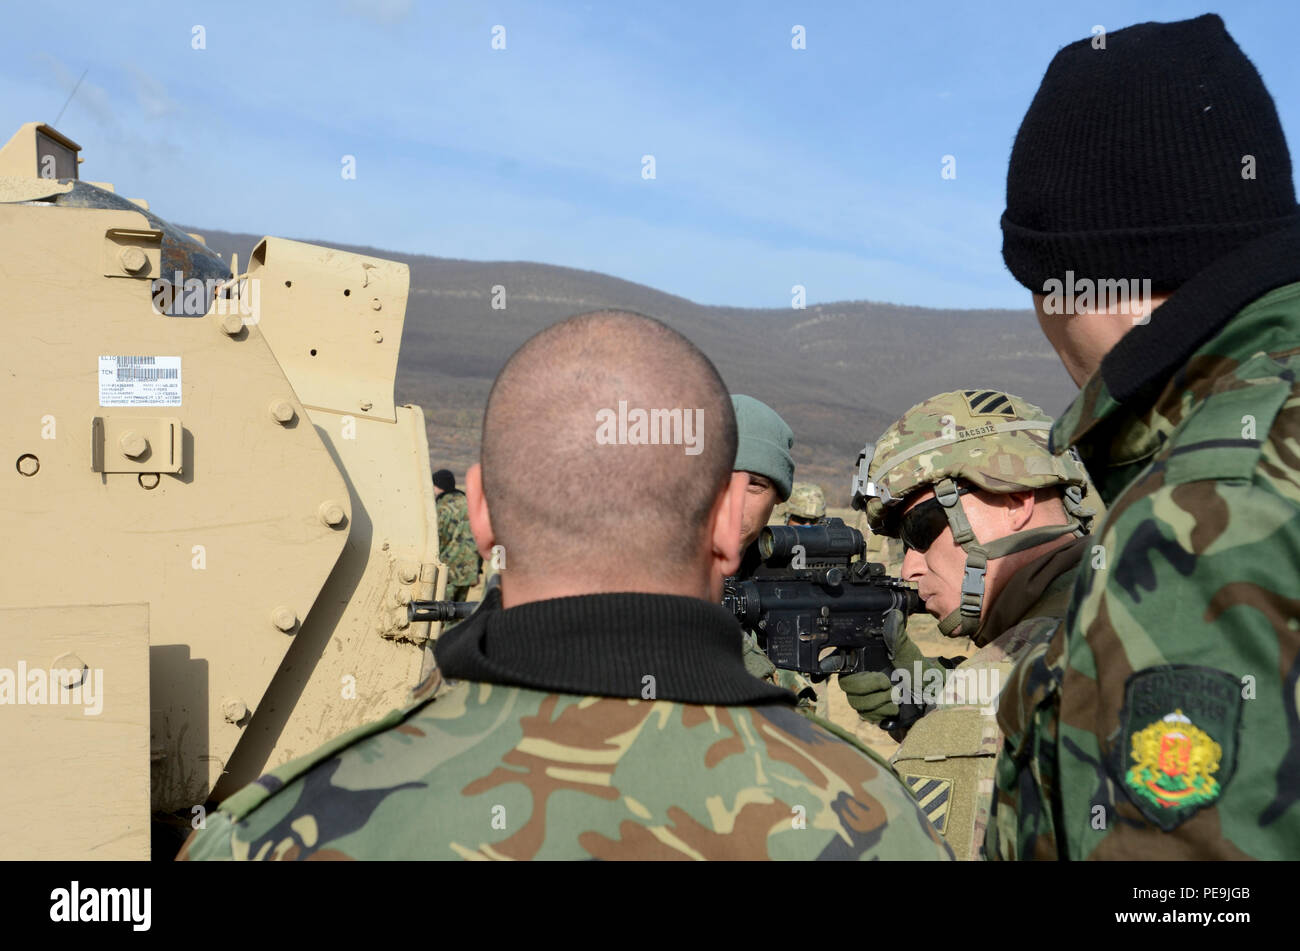 U.S. Army Sgt. Michael Conner of Apache Troop, 5th Squadron, 7th Cavalry Regiment, 3rd Infantry Division, Fort Stewart, Ga., shows some Bulgarian soldiers how to properly aim and fire a U.S. Army M4 carbine rifle during Exercise Peace Sentinel at Novo Selo Training Center, Bulgaria, Nov. 22, 2015. (U.S. Army photo by Staff Sgt. Steven M. Colvin/Released) - Stock Image